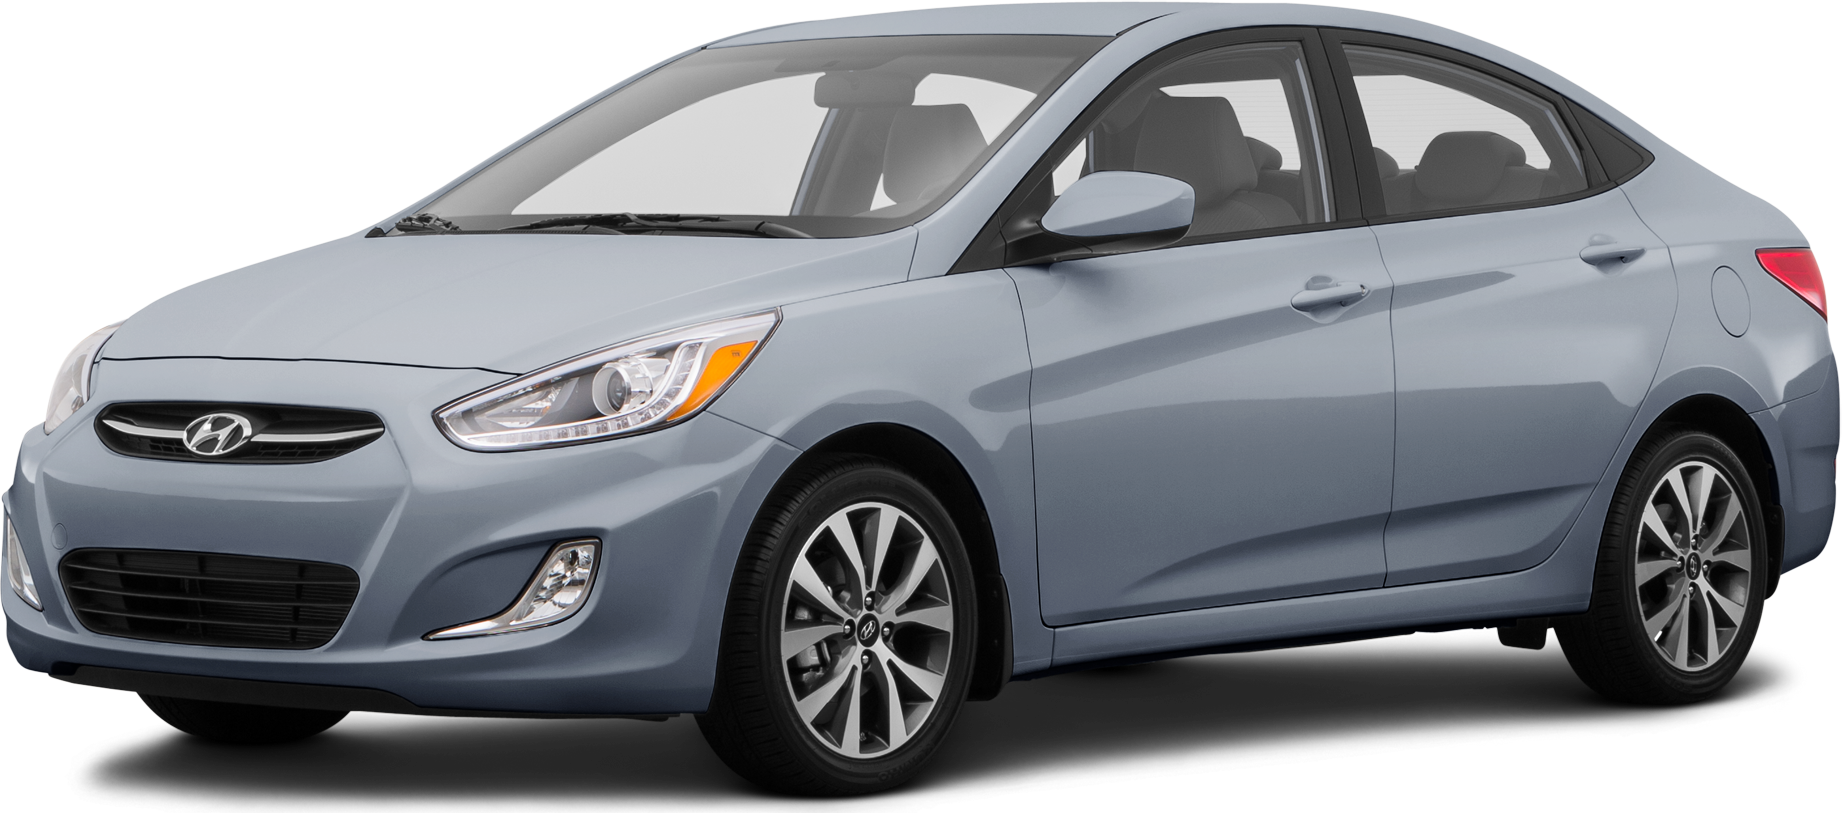 2015 Hyundai Accent Values Cars For Sale Kelley Blue Book